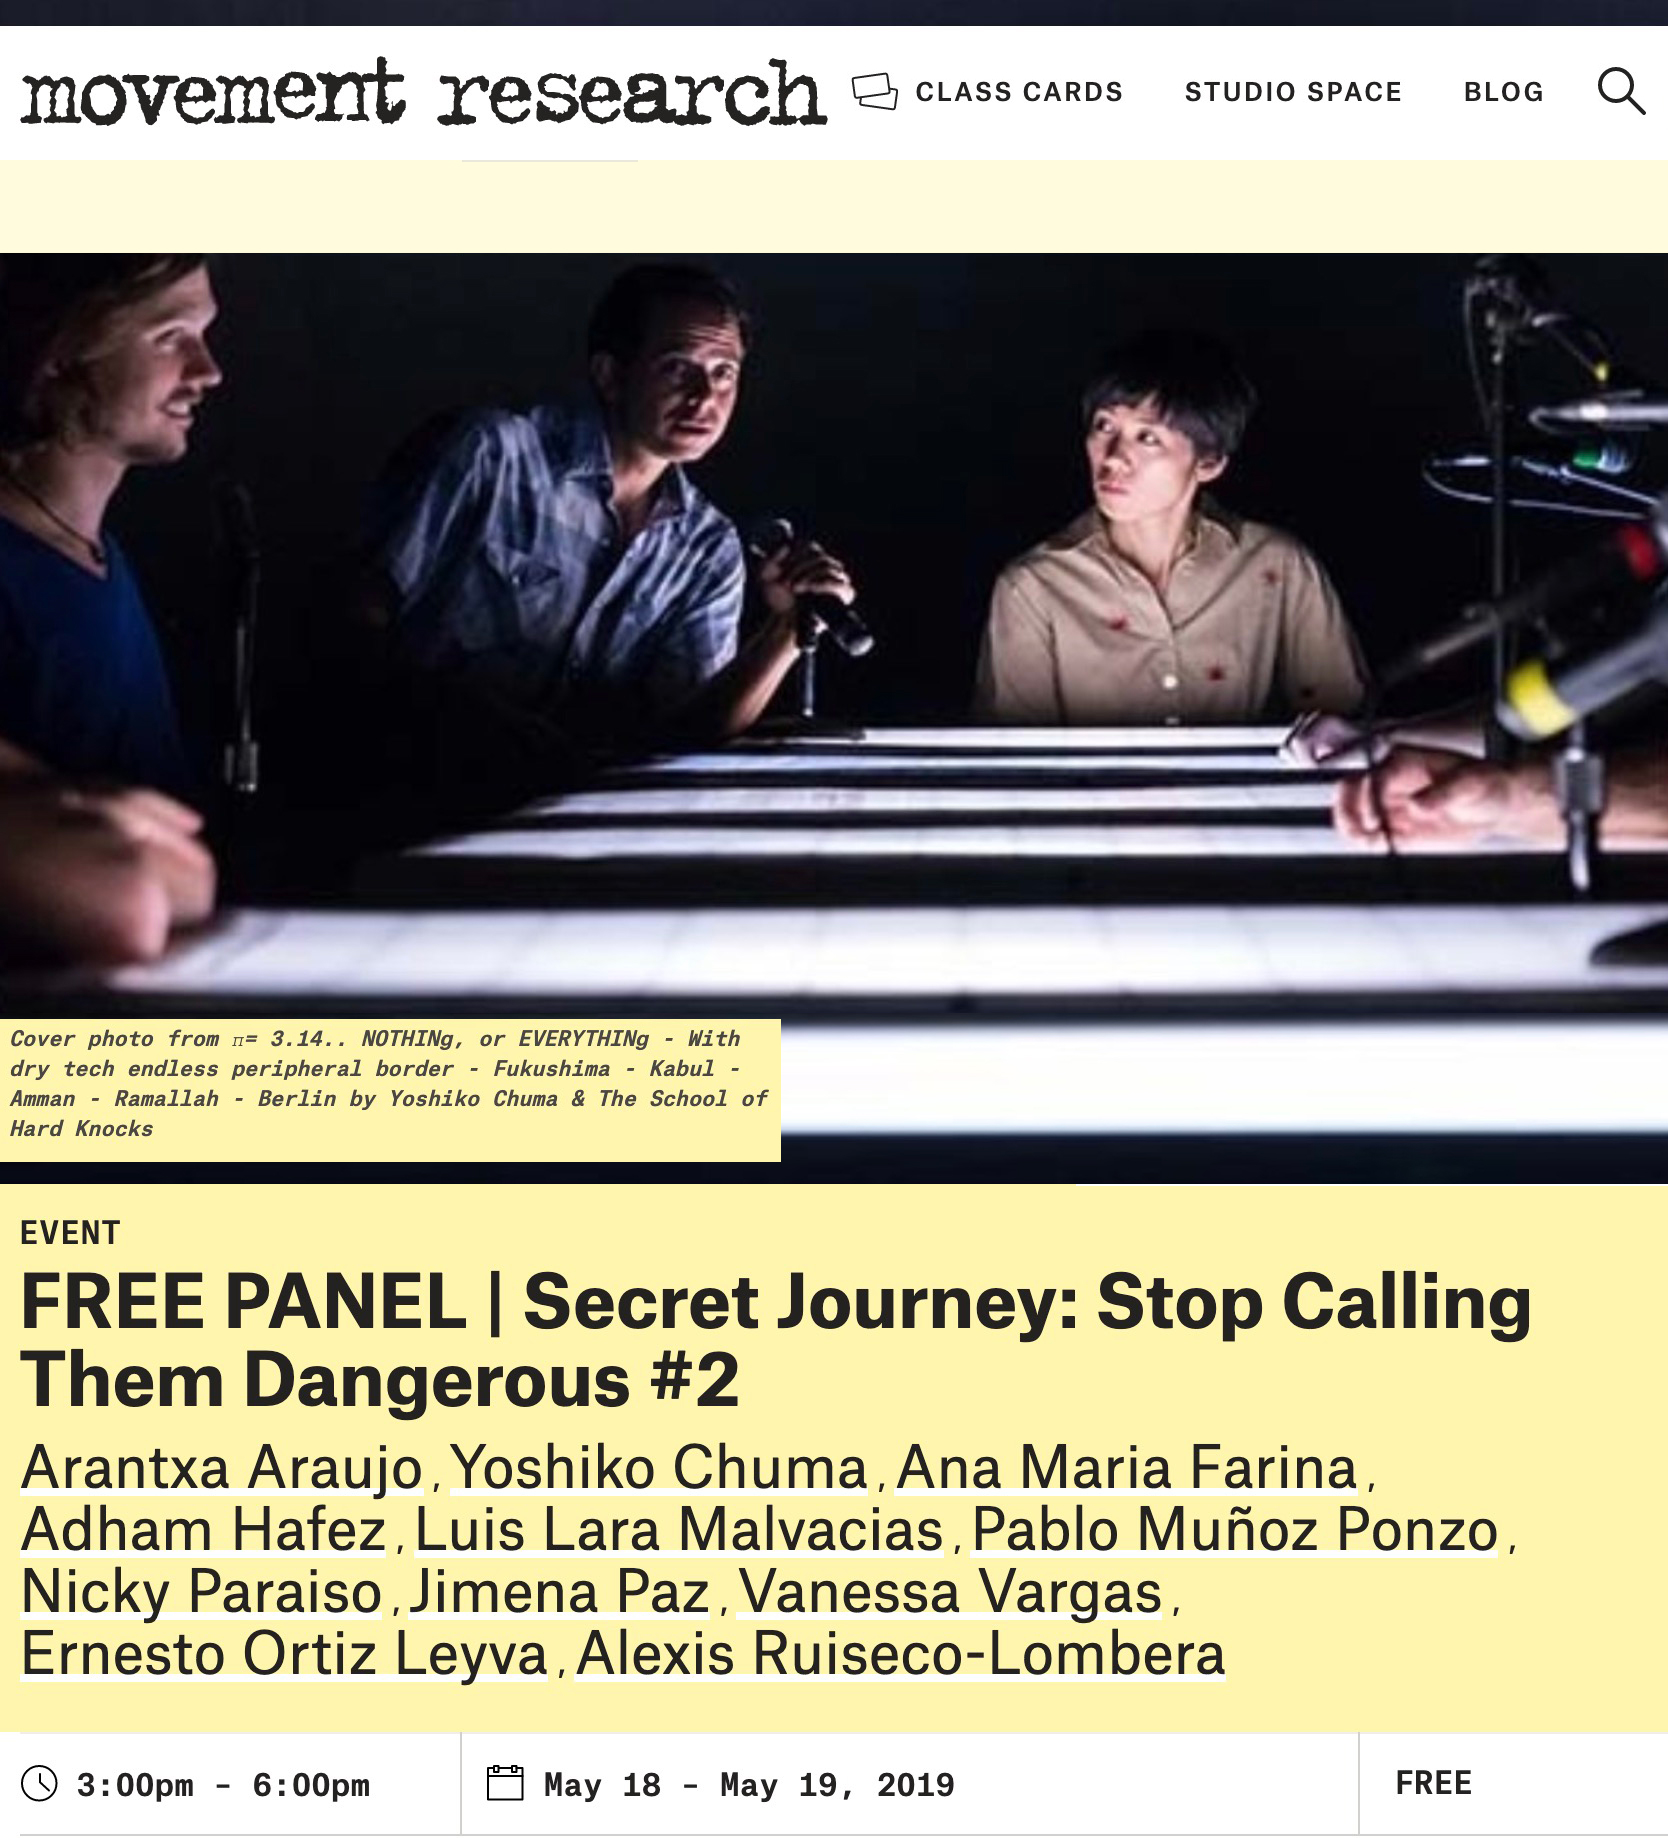 "FREE PANEL | Secret Journey: Stop Calling Them Dangerous #2Arantxa Araujo,Yoshiko Chuma,Ana Maria Farina,Adham Hafez,Luis Lara Malvacias,Pablo Muñoz Ponzo,Nicky Paraiso,Jimena Paz,Vanessa Vargas,Ernesto Ortiz Leyva,Alexis Ruiseco-Lombera - A Panel Symposium with long-table discussions over two days. The Panel Symposium includes conversations between Yoshiko Chuma (New York/Berlin/Japan), Adham Hafez (NYC/Berlin/Cairo) and dance artists from around the world. Secret Journey: ""Stop Calling Them Dangerous"